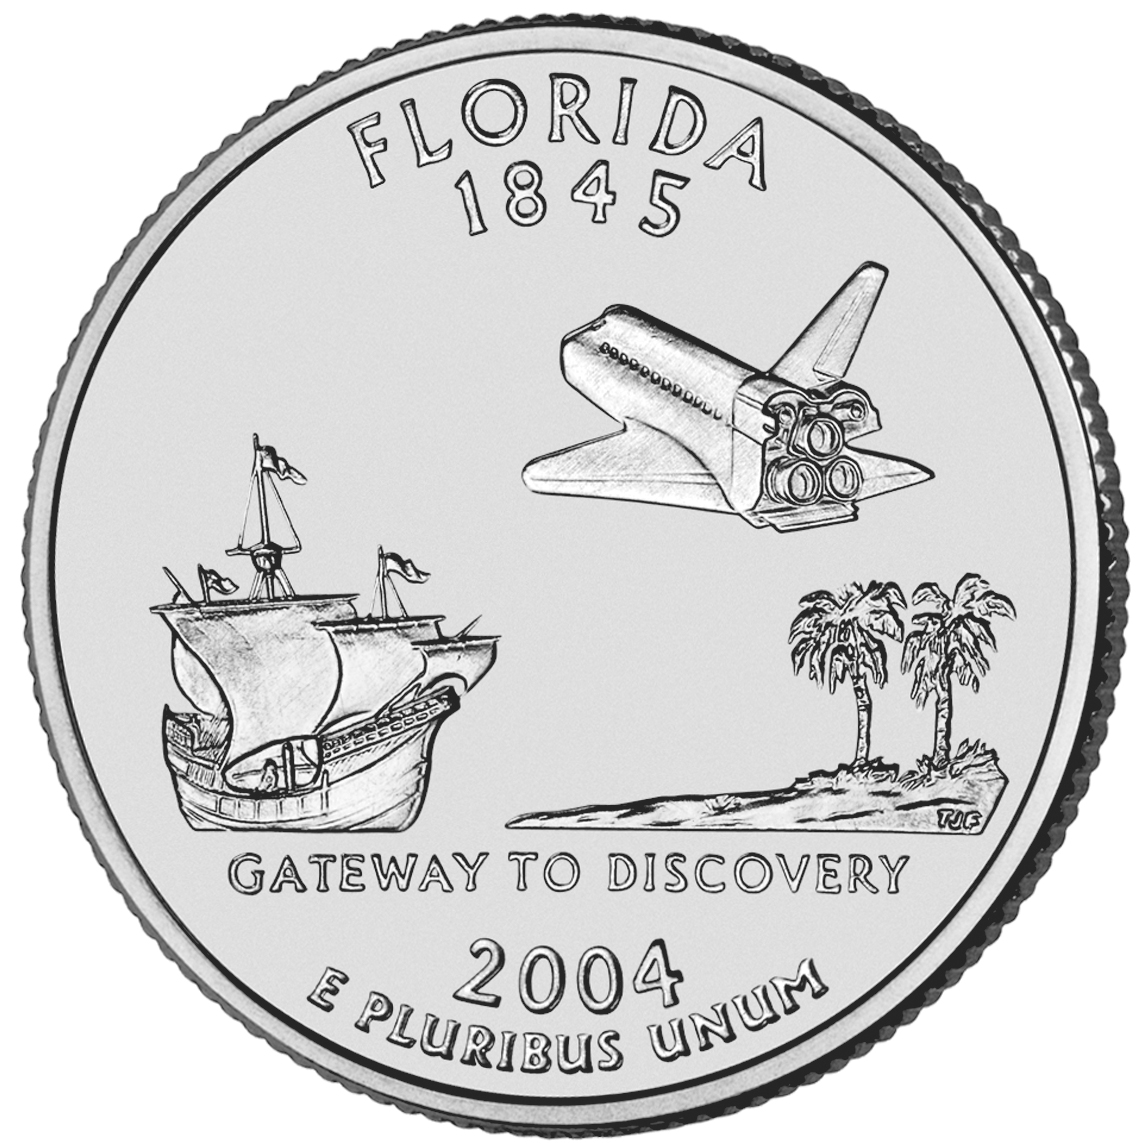 The Florida quarter was one of two coins to act as spin balance weights for the New Horizons spacecraft.